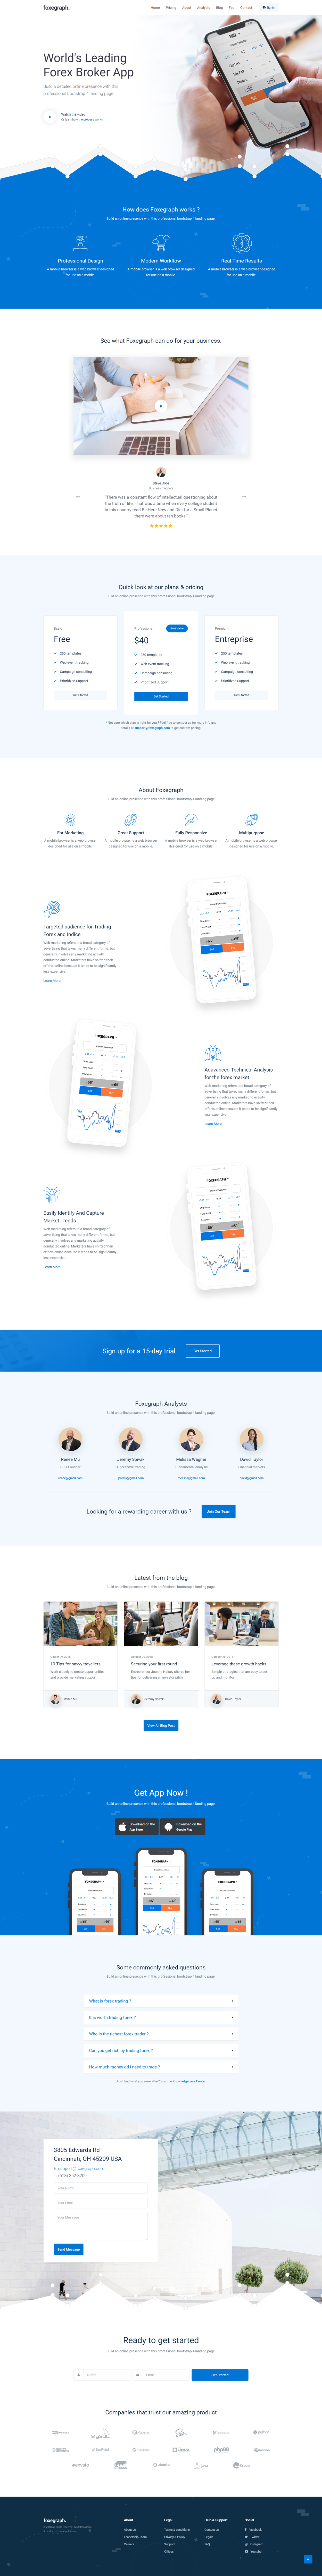 Foxegraph Multipurpose Landing Page Template By Mutationthemes On Envato Elements Web Design Inspiration Landing Page Html Page Template